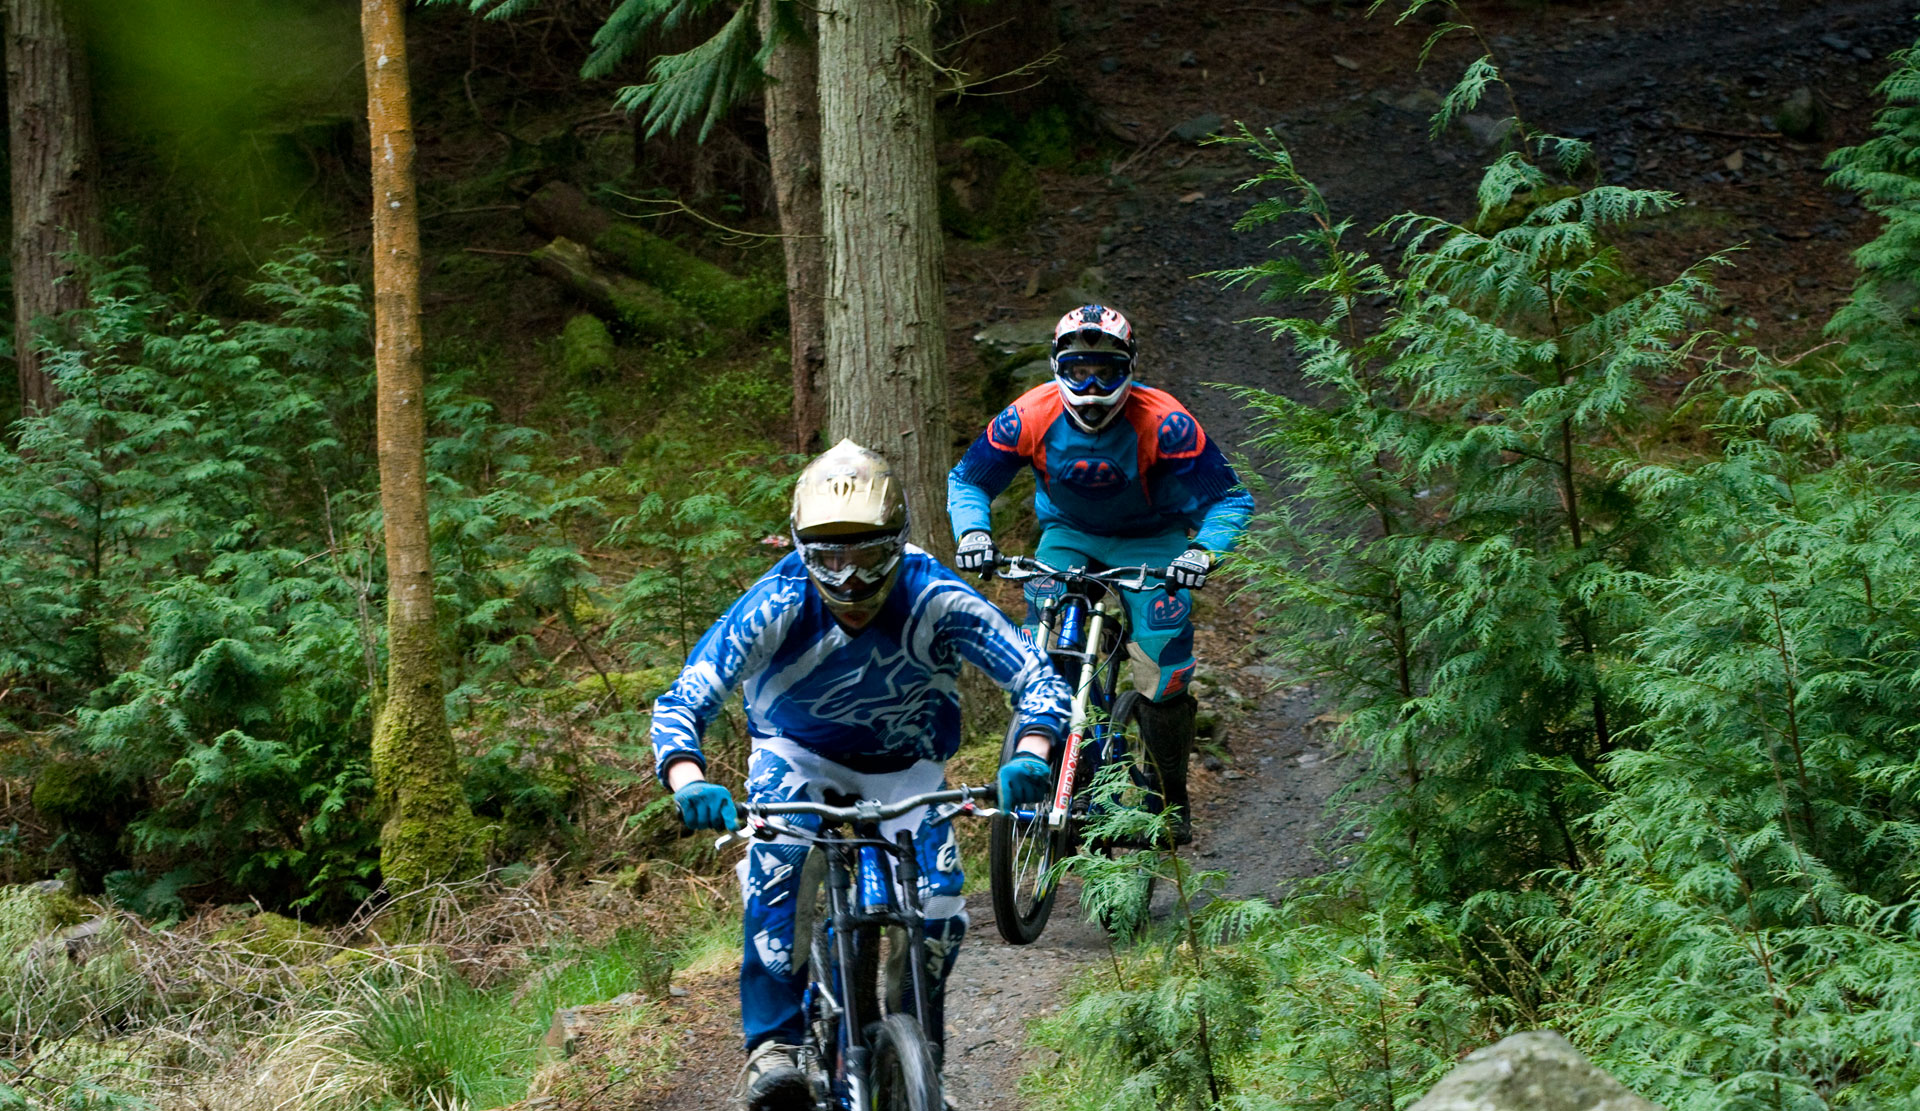 Tudor Lodge Porthmadog is the perfect base activities such as mountain biking and cycling